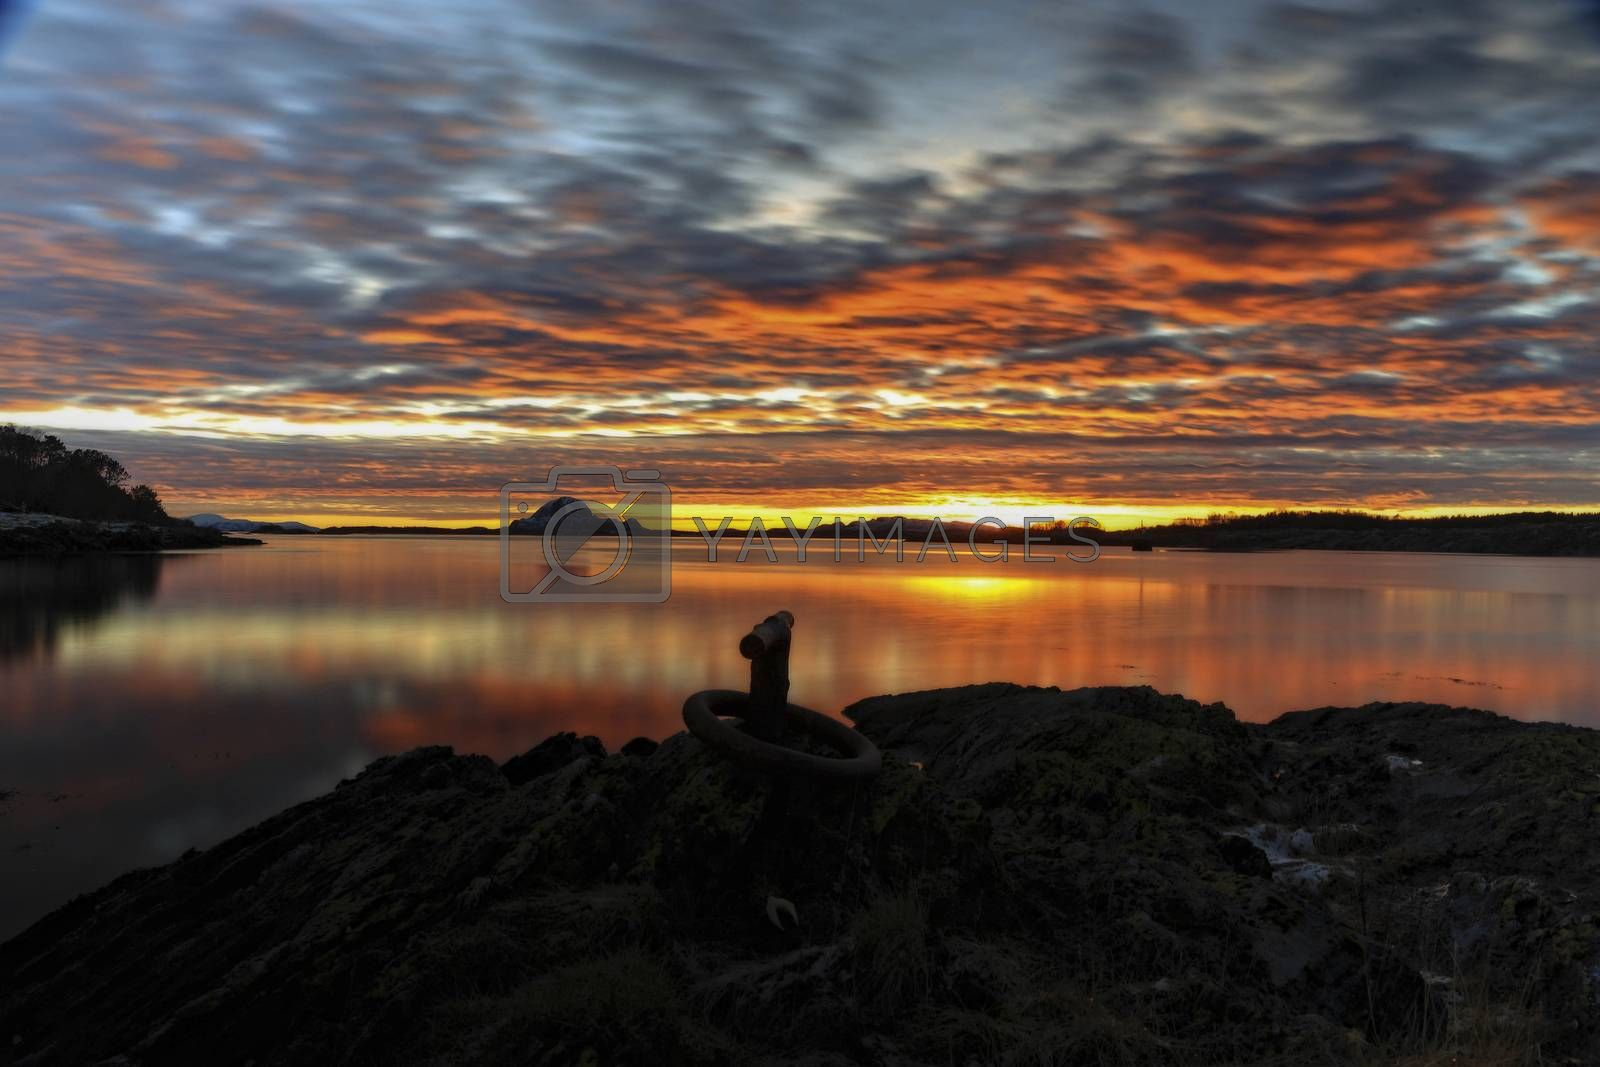 Royalty free image of Solnedgang by post@bronn.no